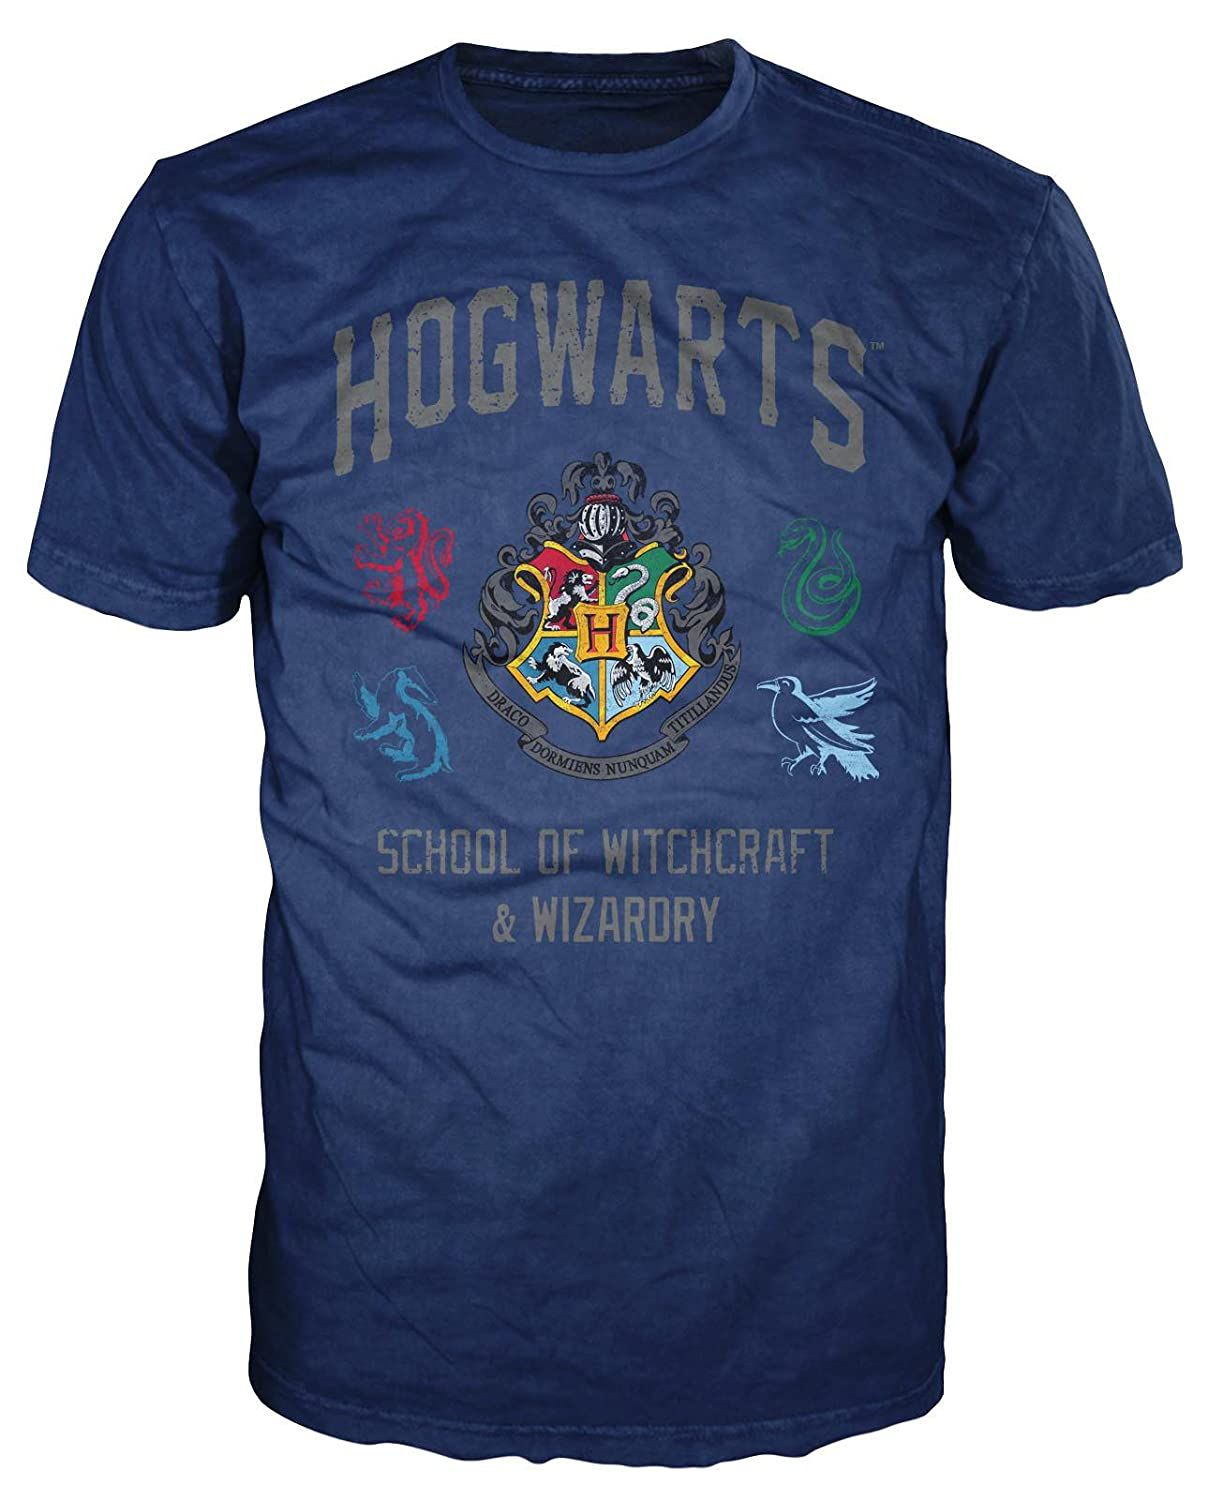 HARRY POTTER Hogwarts Crest Witchcraft and Wizardry Men's Adult Graphic Tee T-Shirt